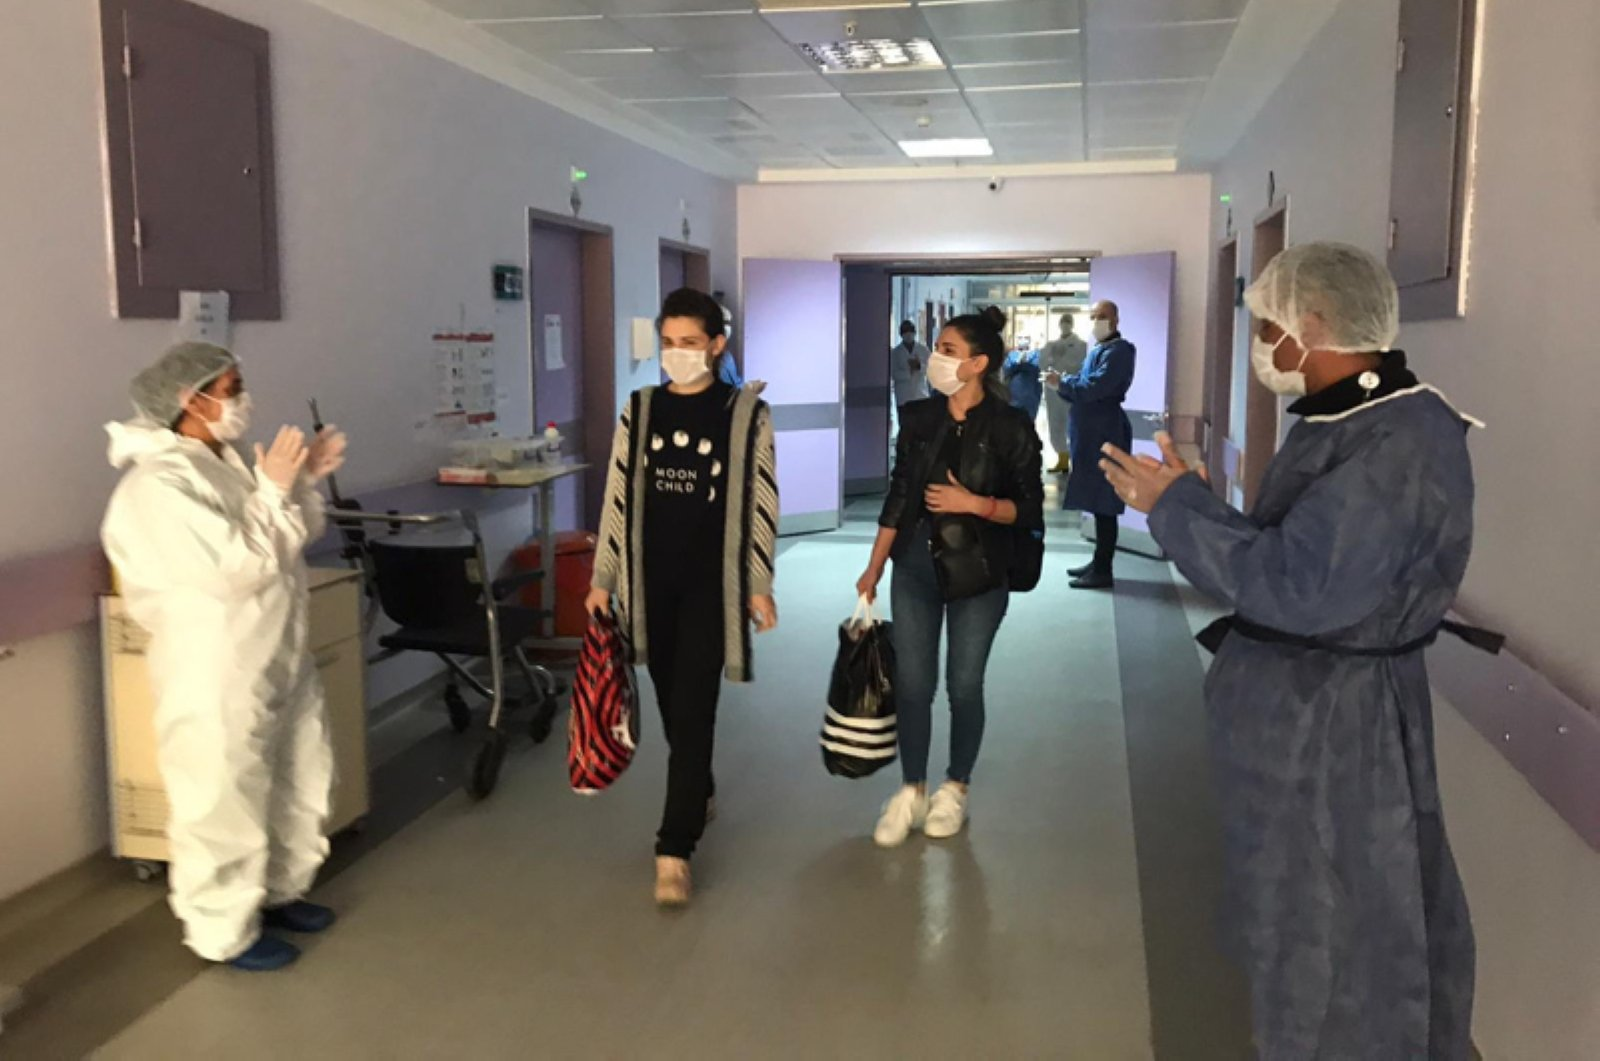 Staff at the Tunceli State Hospital applause 27-year-old E.D., the last remaining COVID-19 patient in the province, on April 24, 2020. (DHA Photo)